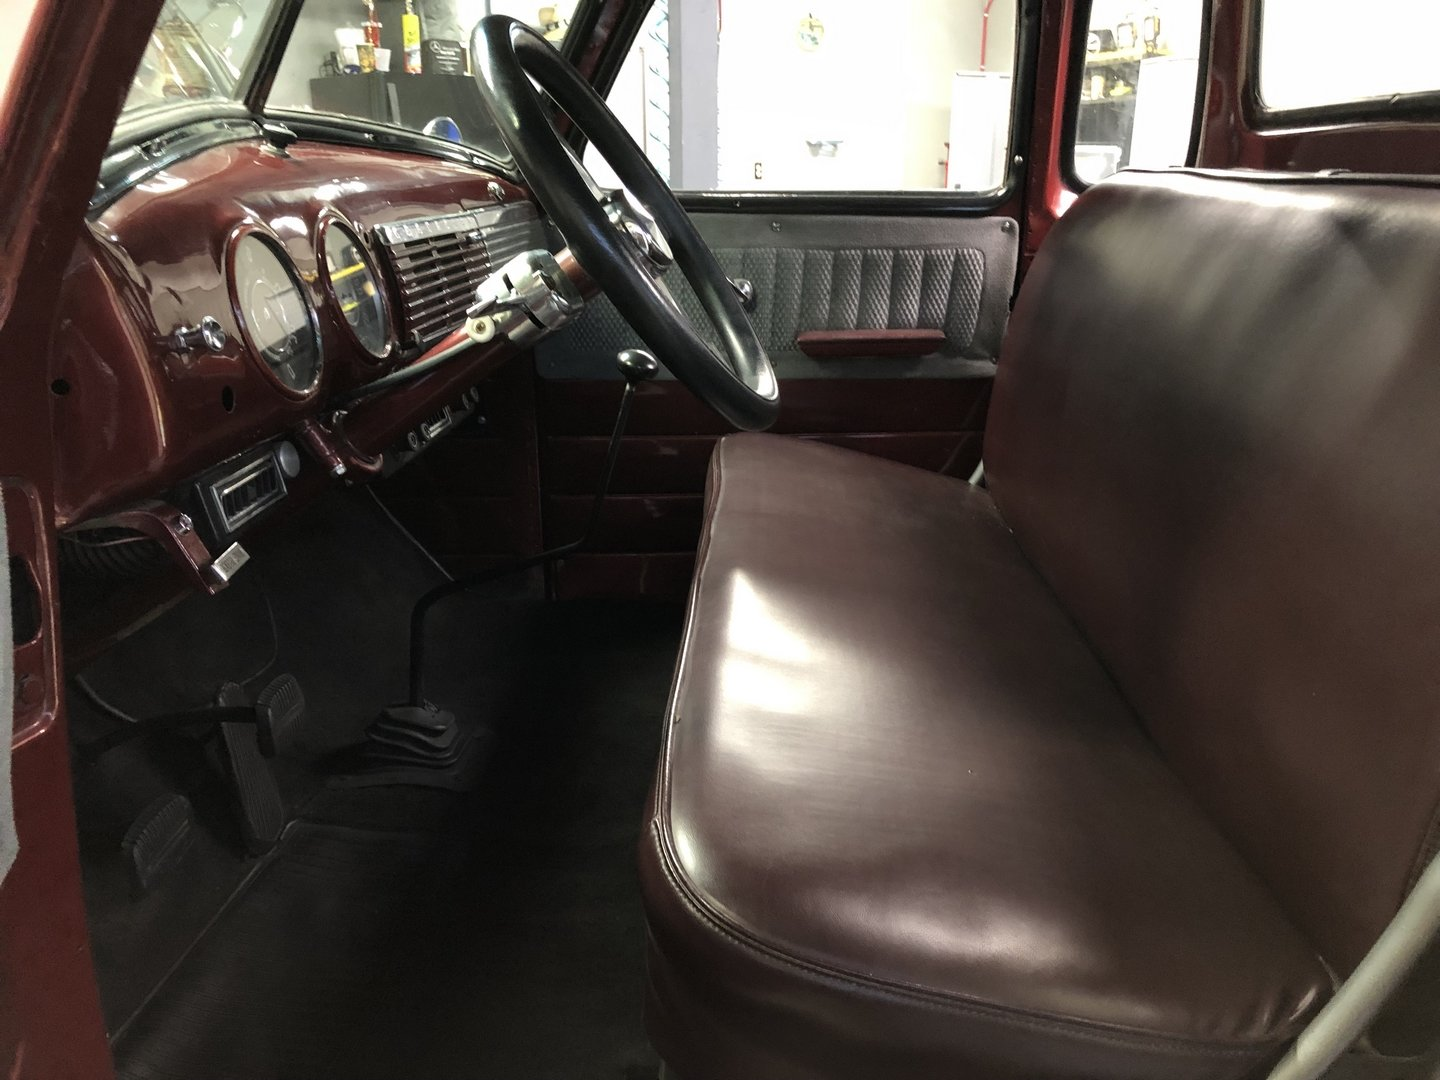 1948 CHEVROLET 5-WINDOW PICKUP For Sale (picture 3 of 6)